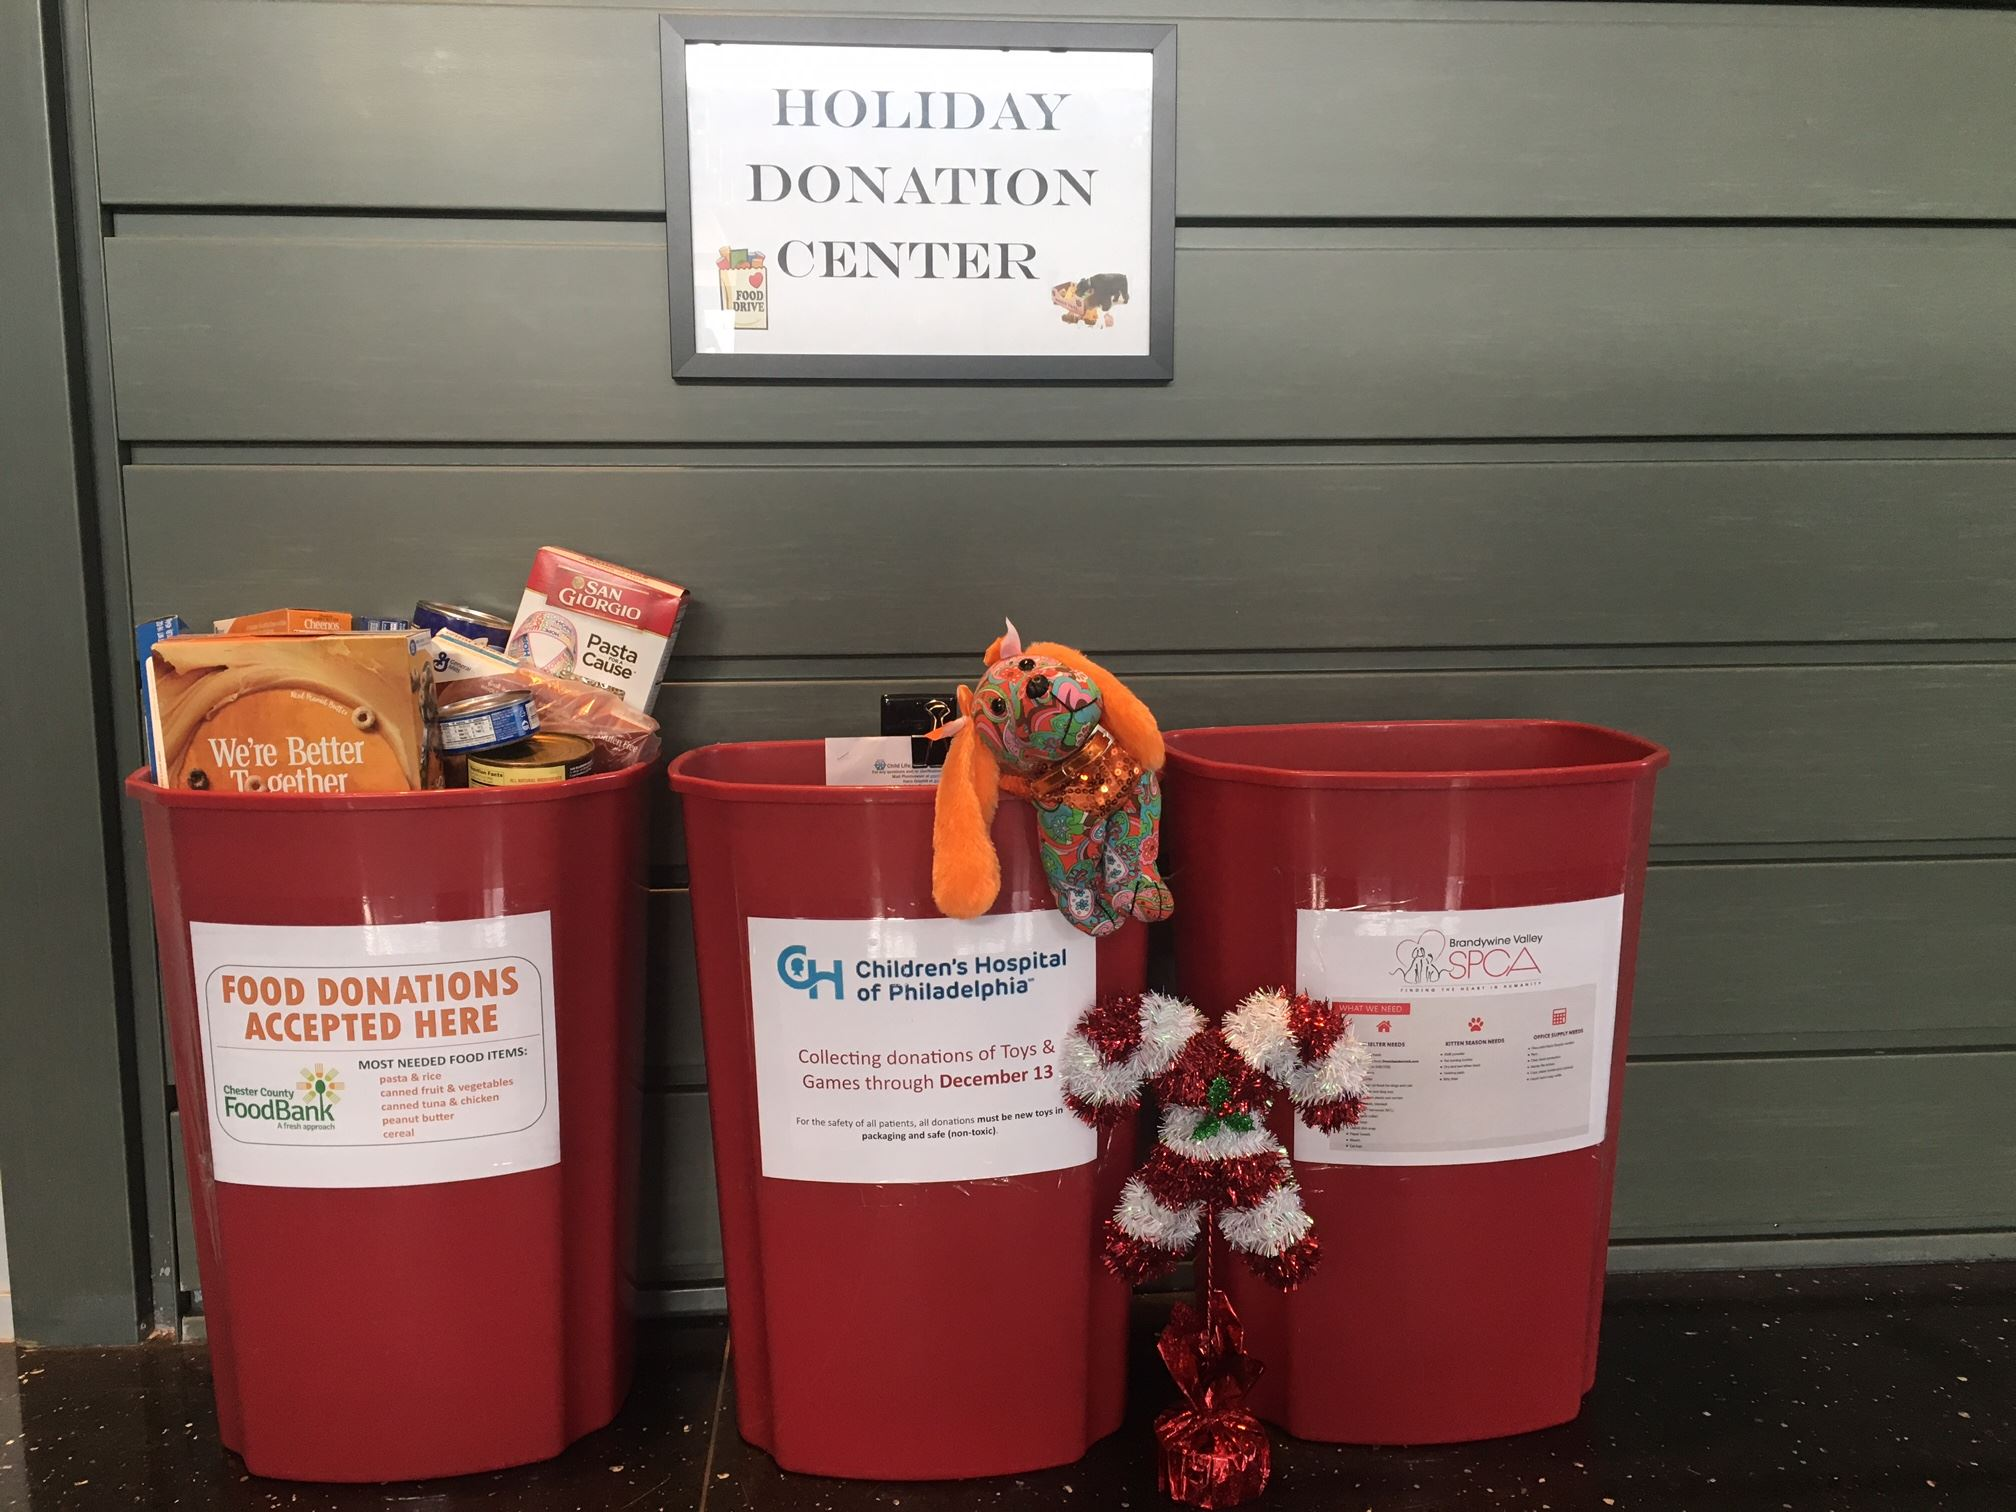 Donation bins and sign